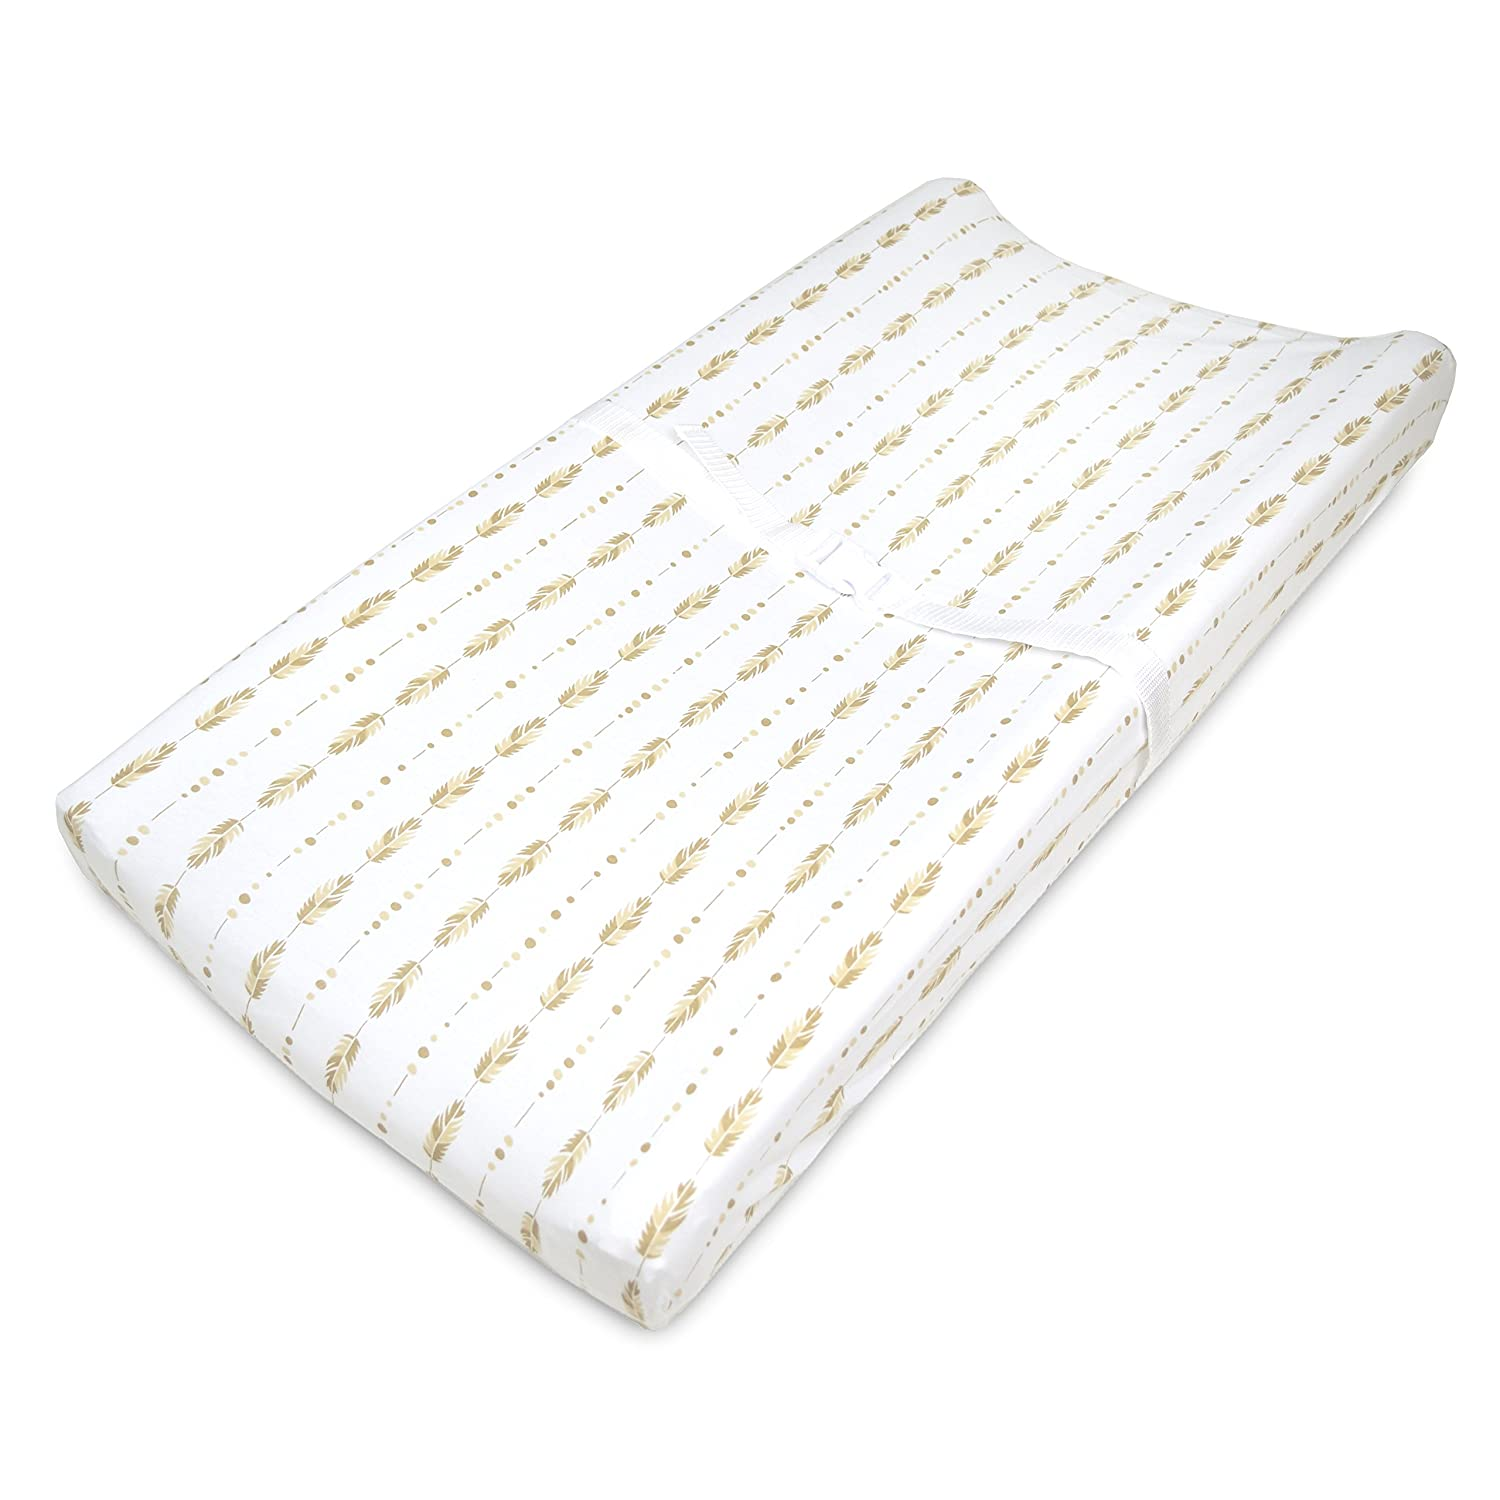 TL Care Printed 100% Cotton Jersey Knit Fitted Contoured Changing Table Pad Cover, Sparkle Gold/Pink Feathers 3555 GP/FE